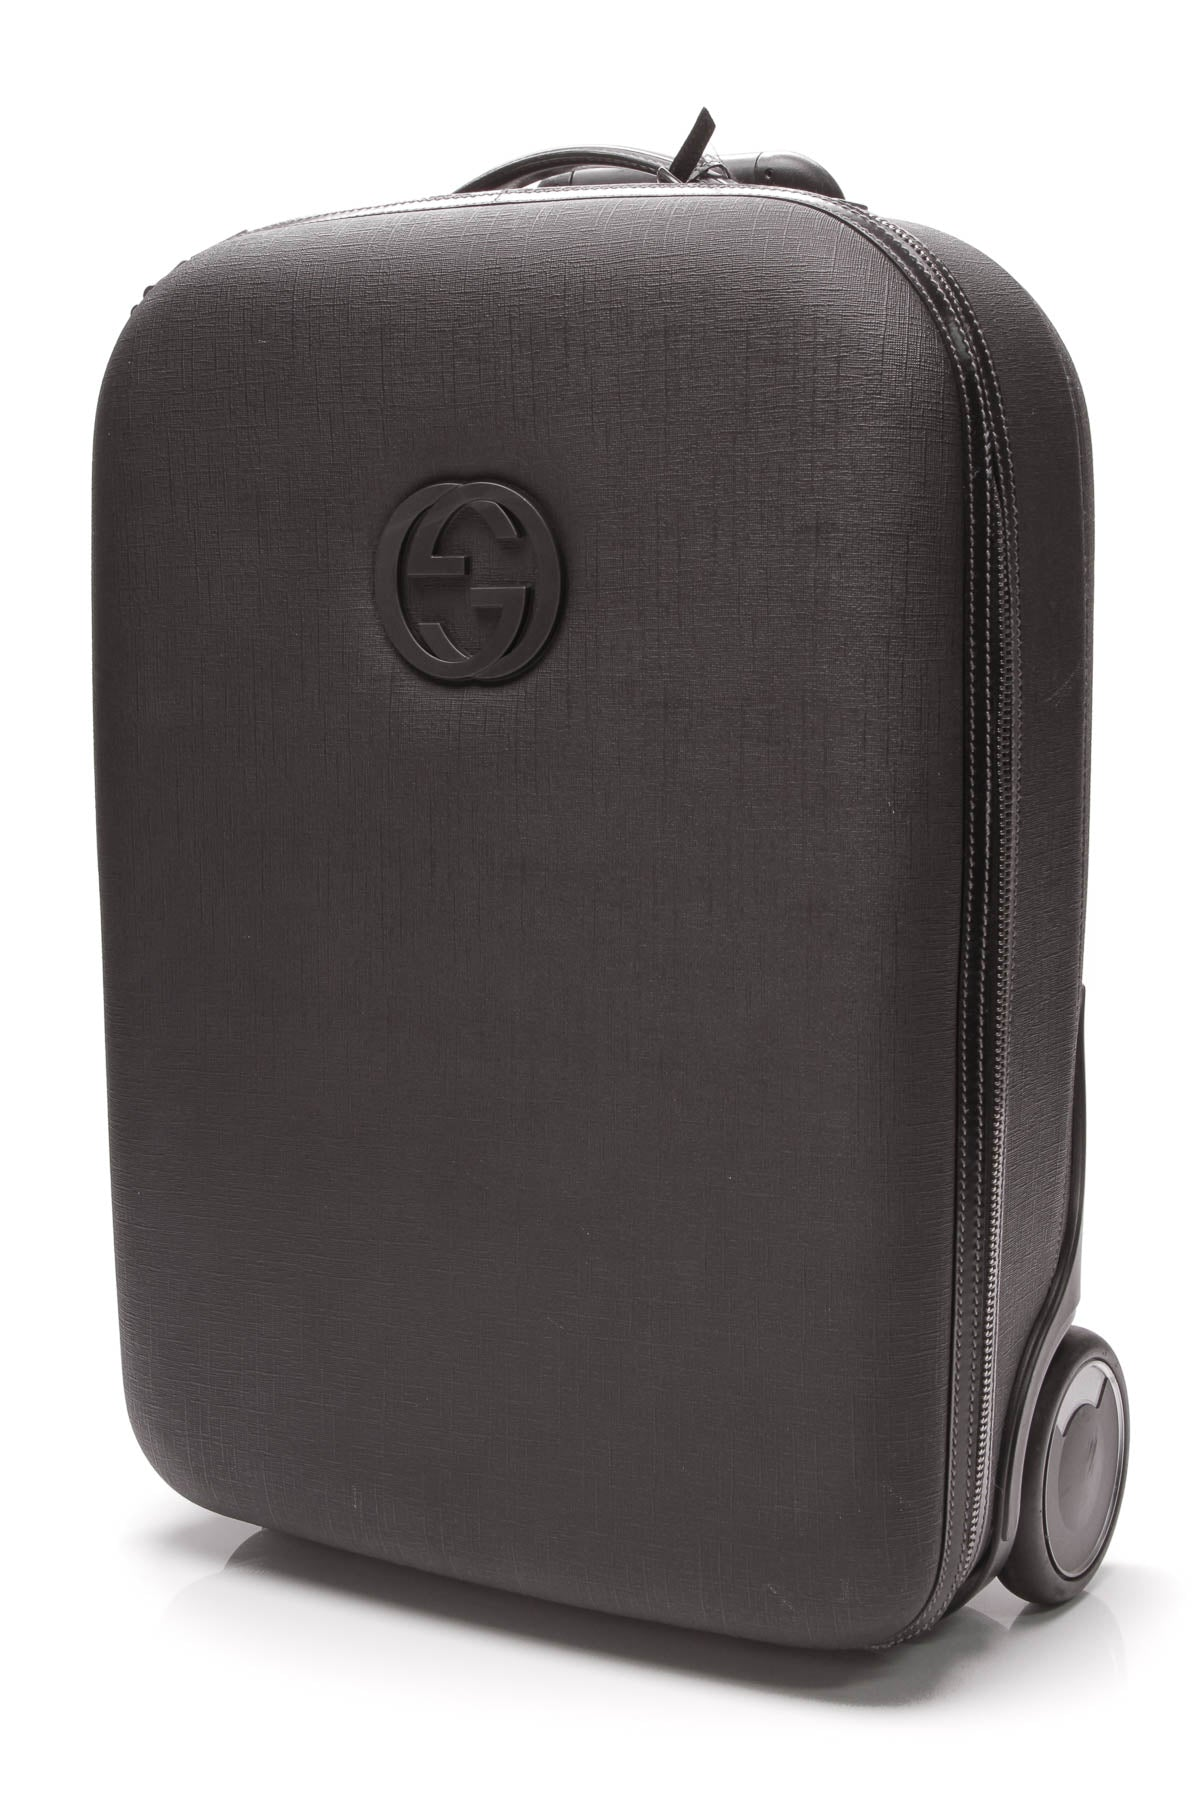 53d6ca0f8044 Gucci Viaggio Collection Rolling Luggage - Black Coated Canvas ...